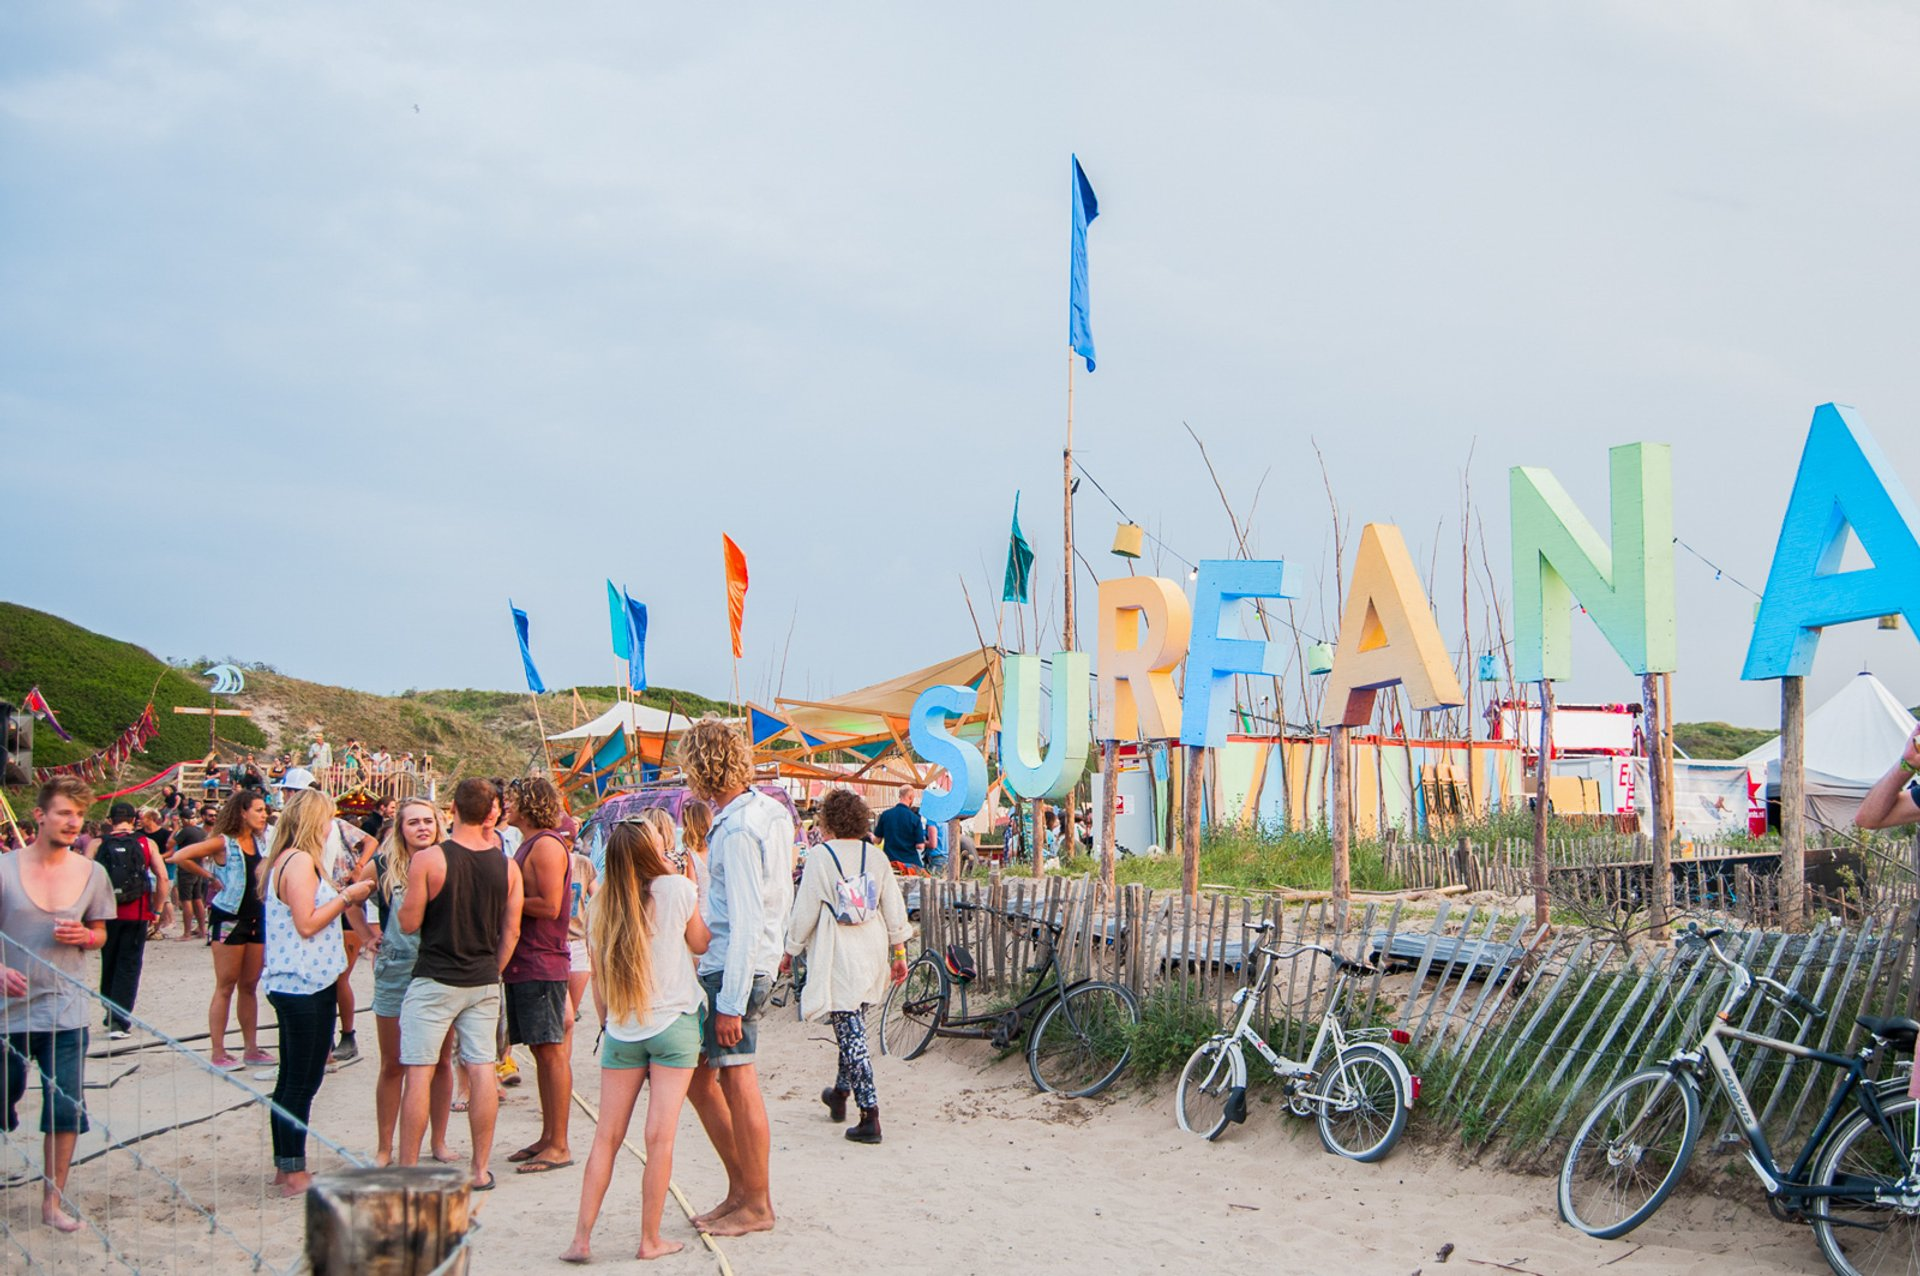 Best time for Surfana Festival in The Netherlands 2020